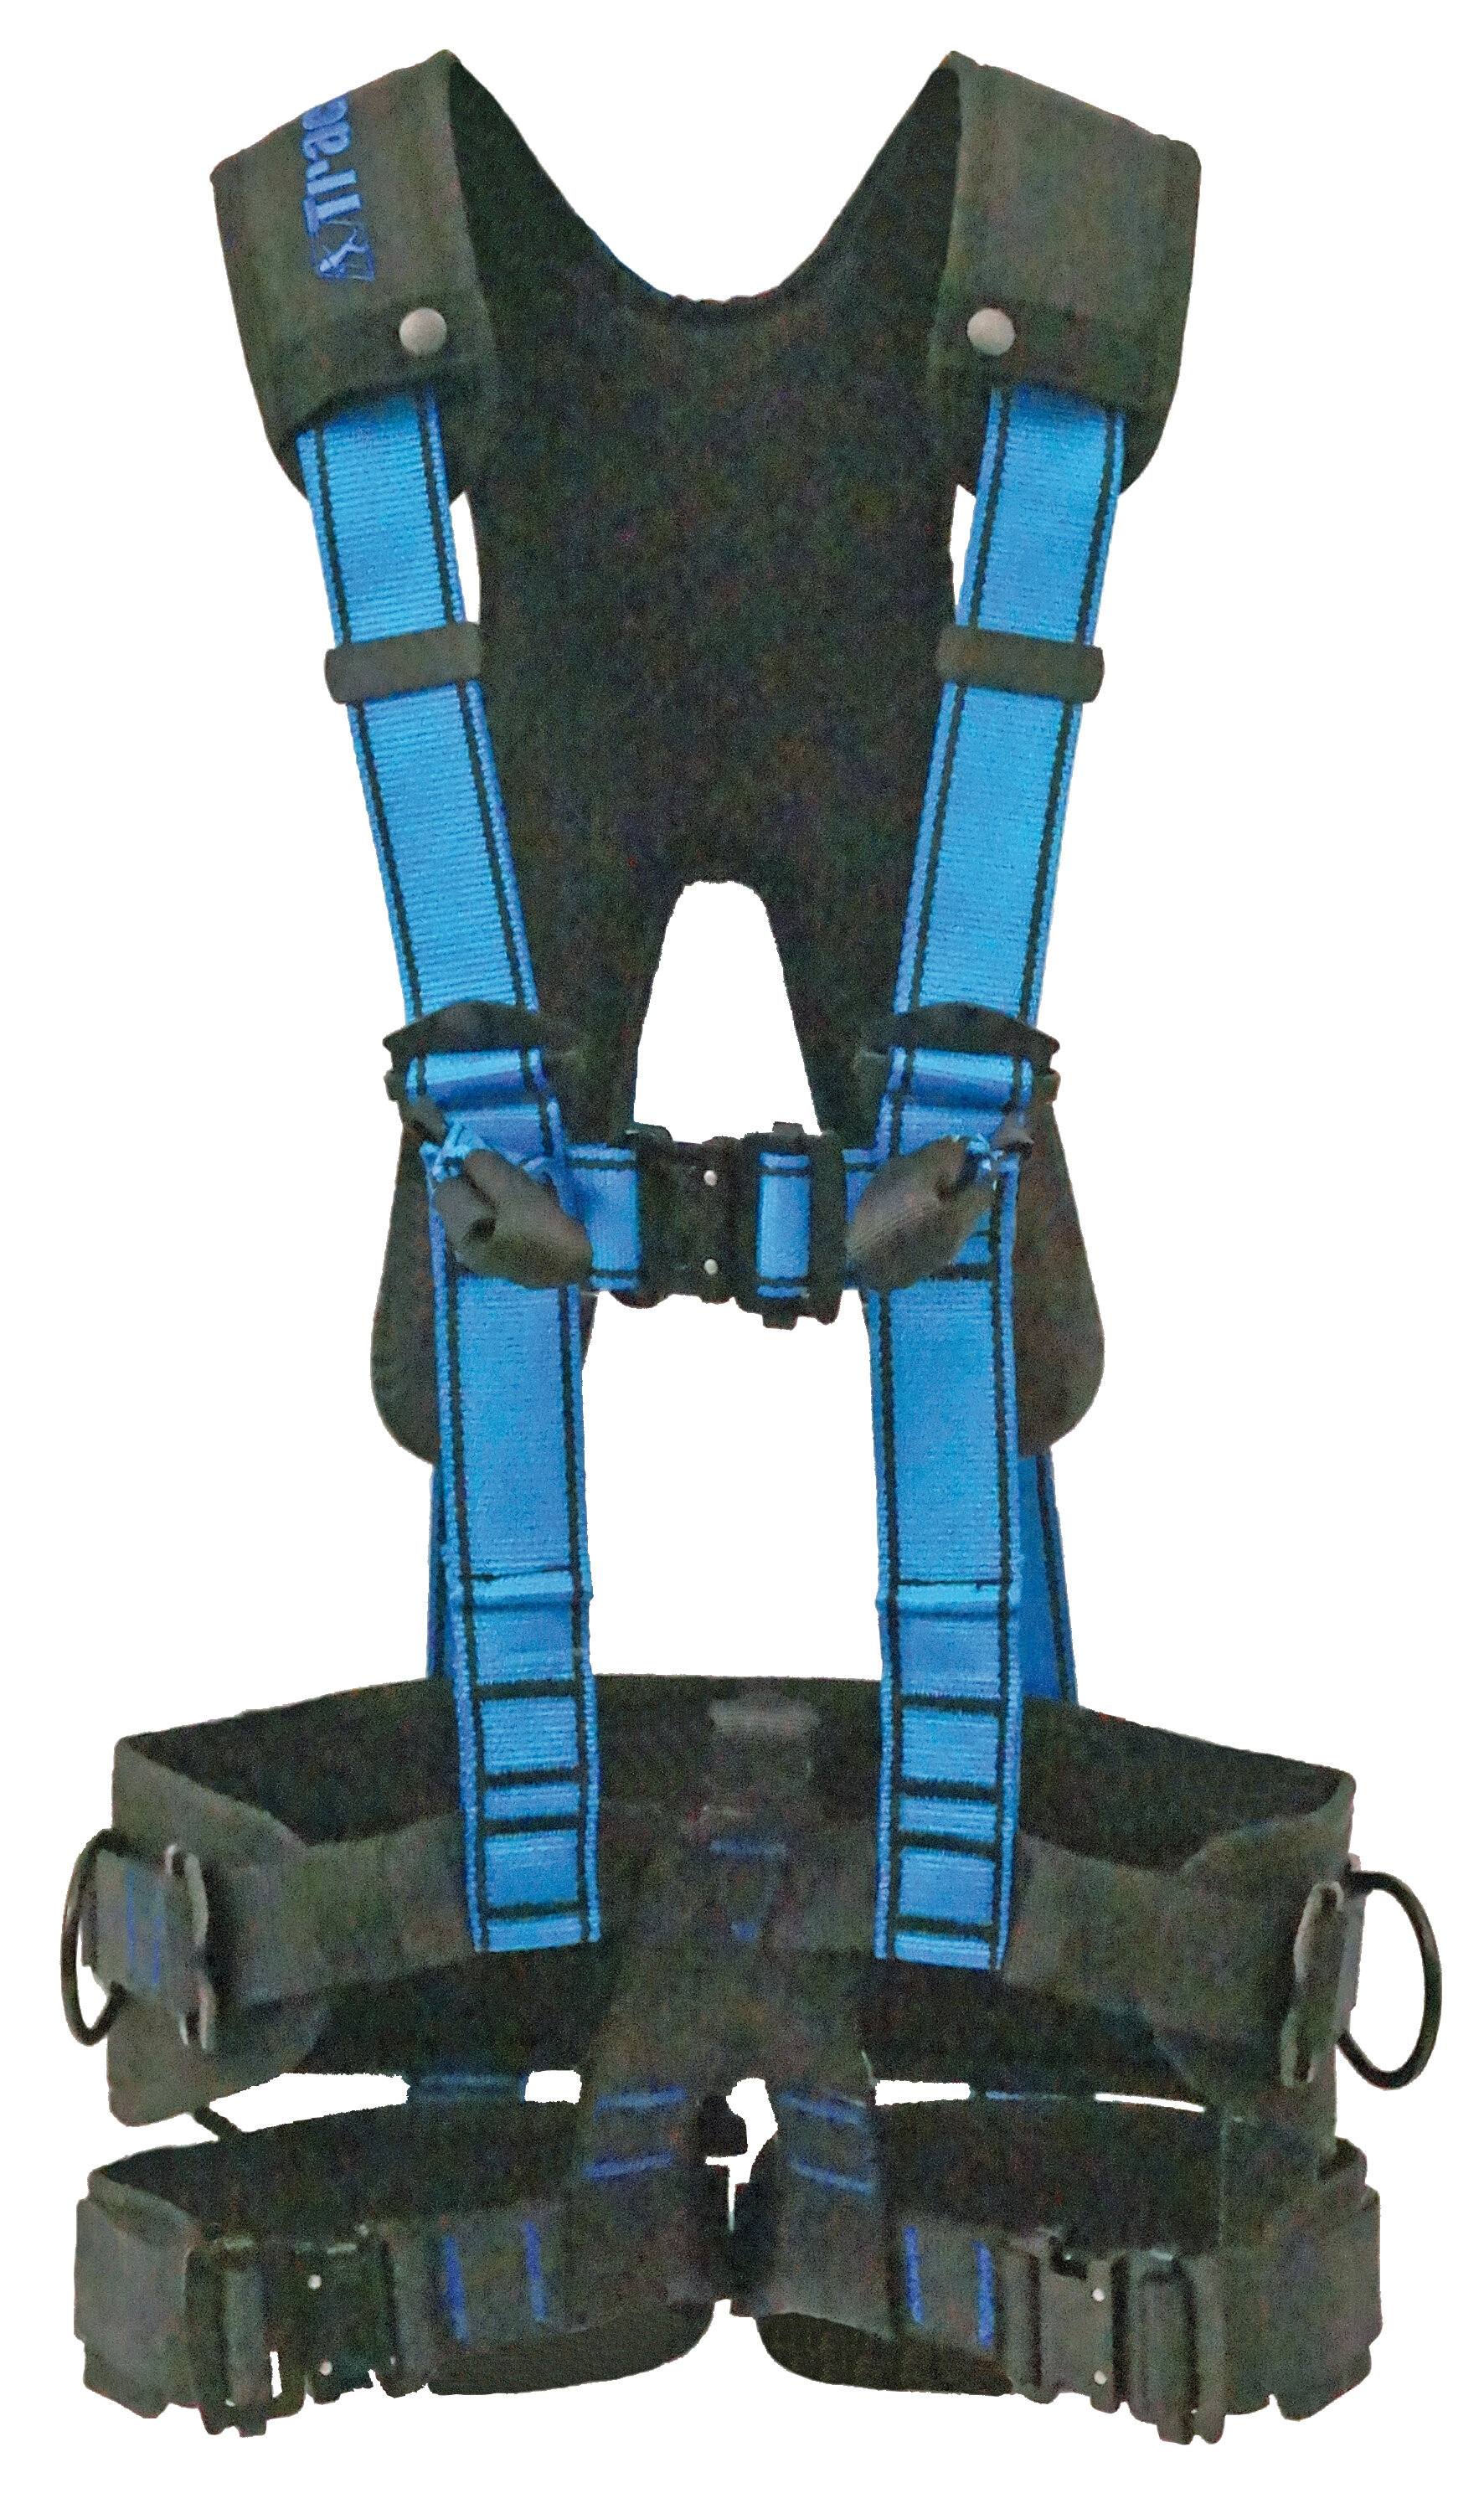 Tractel Technical Harness for Rope Access Work   HT Promast